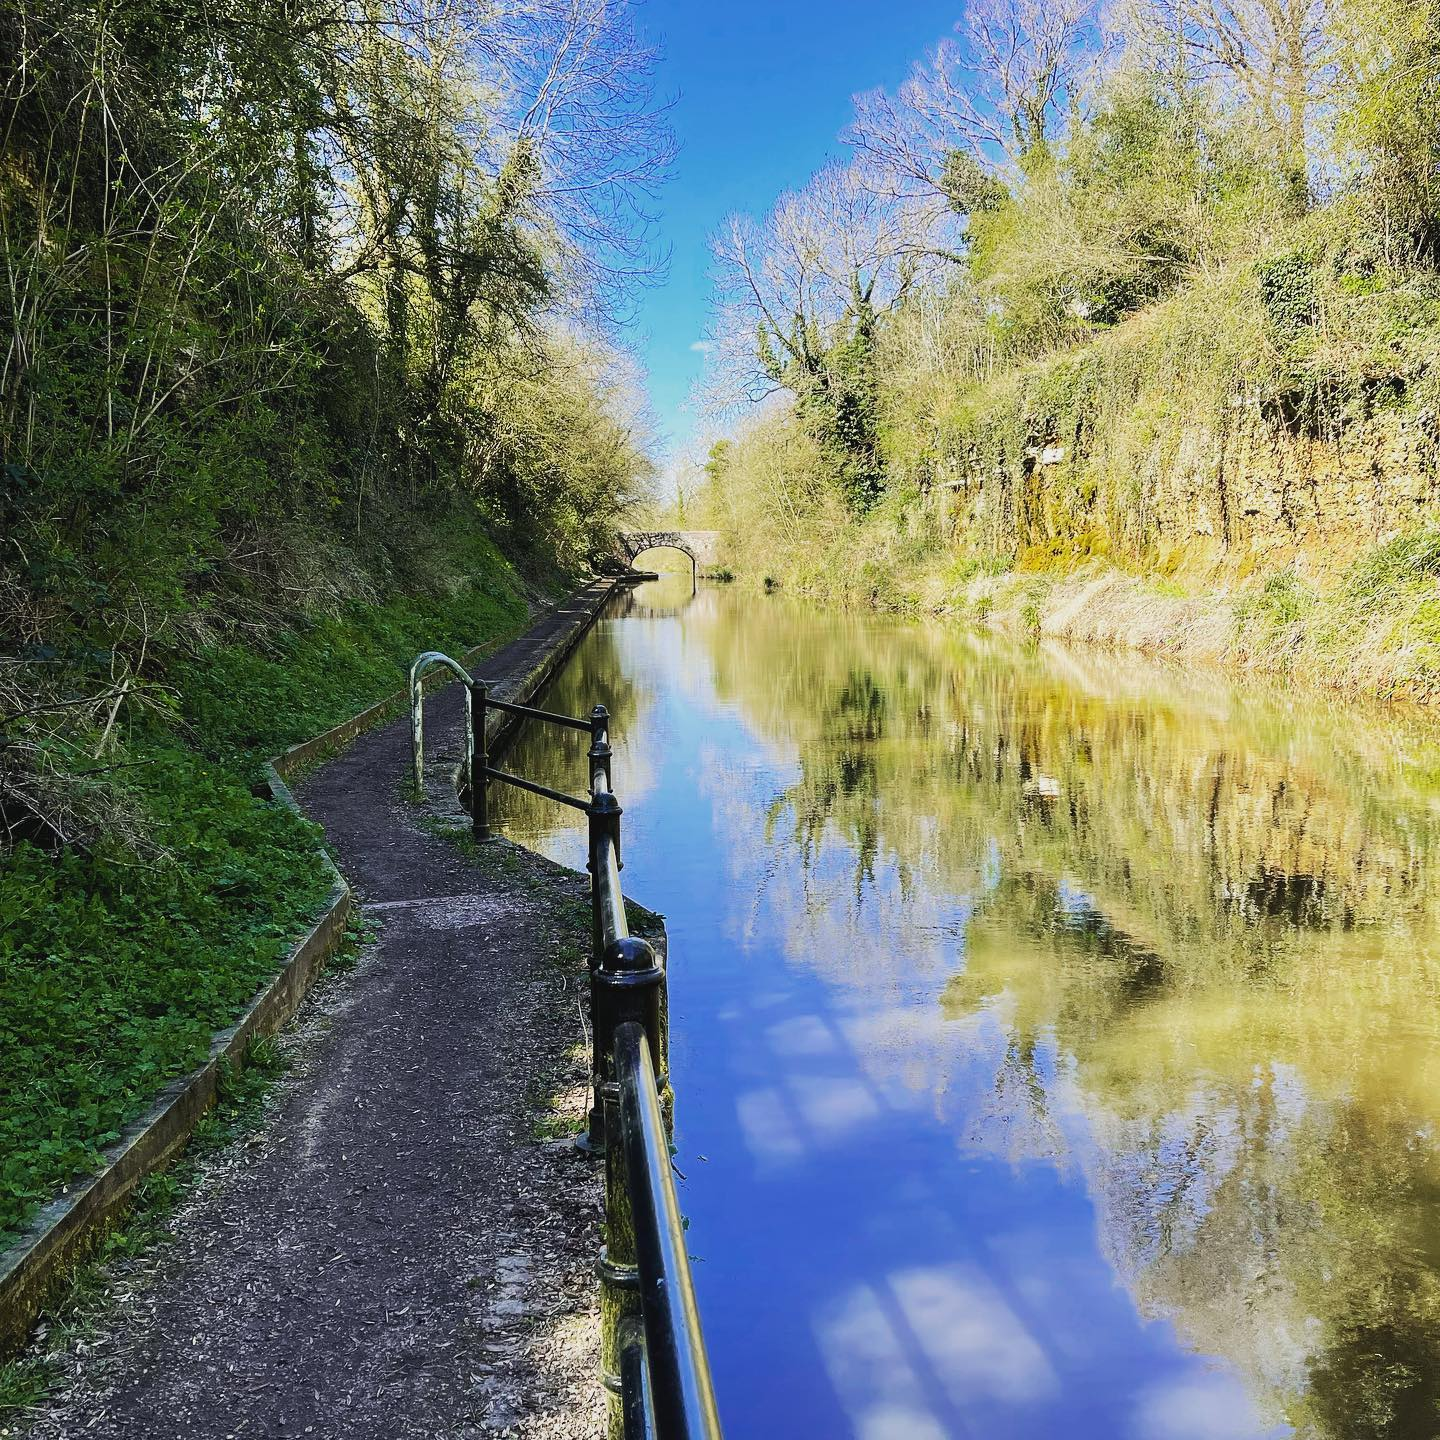 9.2km walk canalside today from Hatton locks to lapworth in the heart of Warwickshire, including the shrewley tunnel which is 396 meters long.